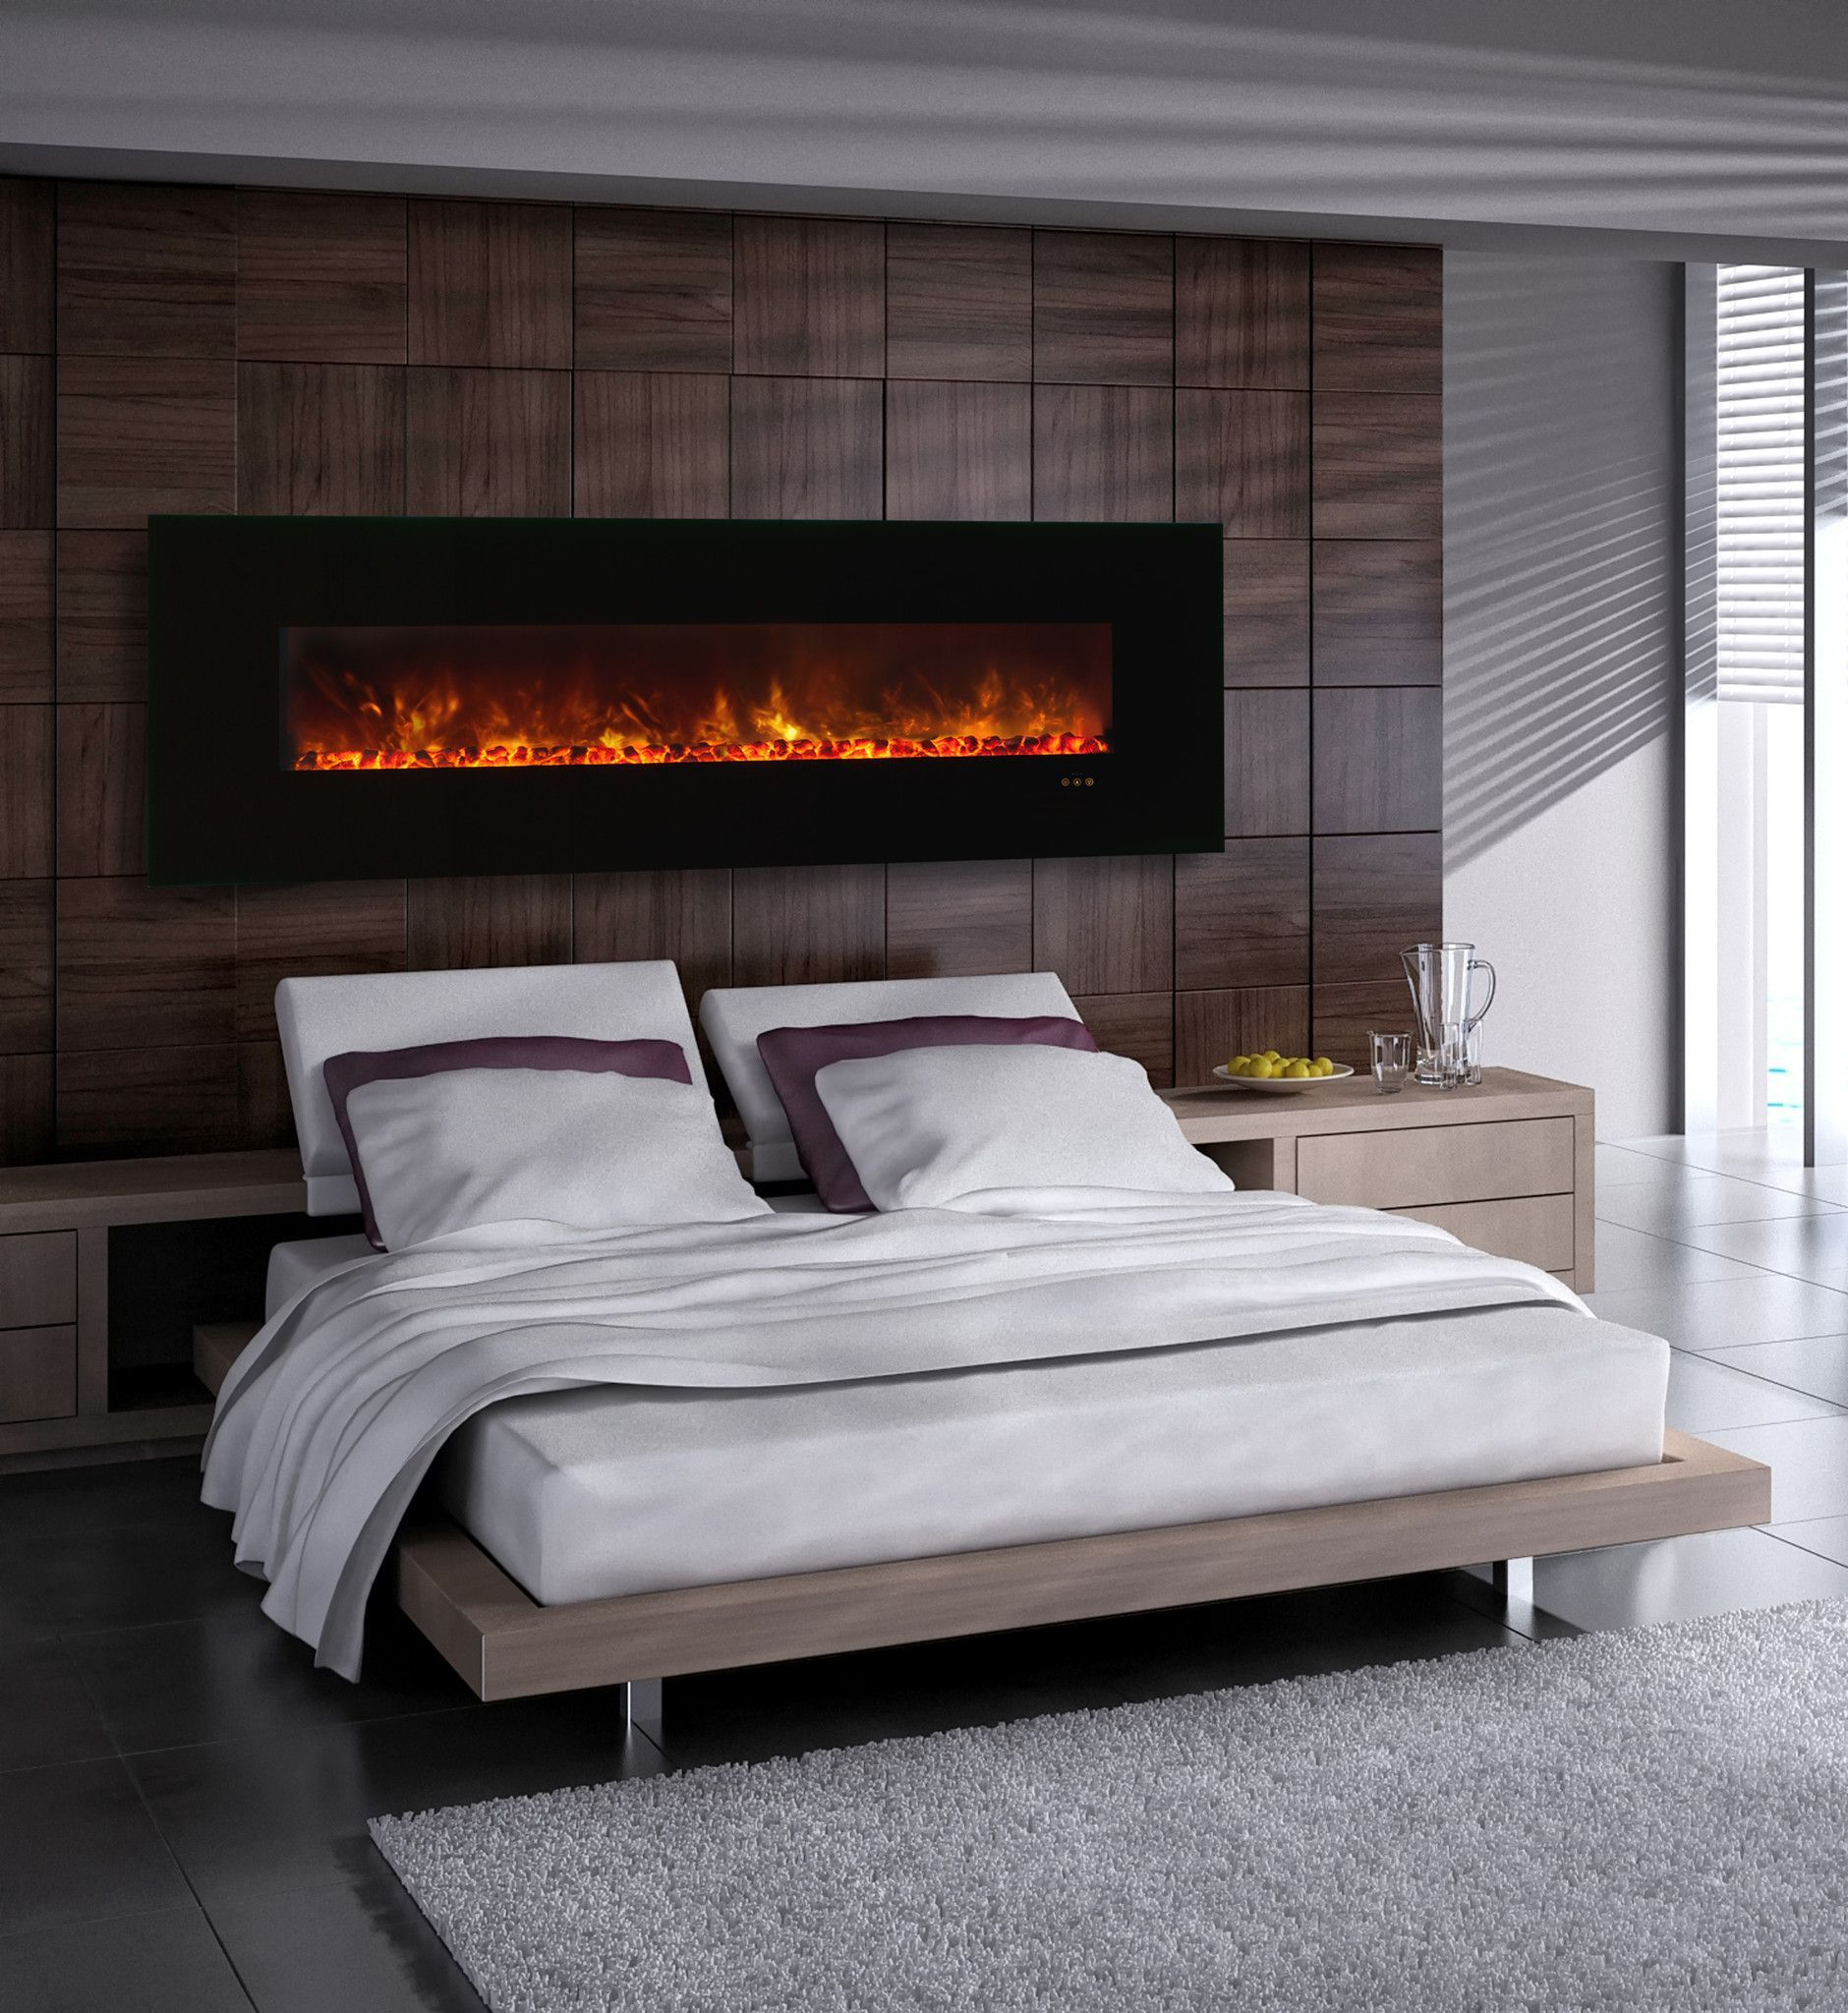 Modern Flames Clx 2 80 Built In Wall Mounted Electric Fireplace Al80clx2 Master Bedroom Accent Wall Ideas Master Bedroom Accents Tiny Bedroom